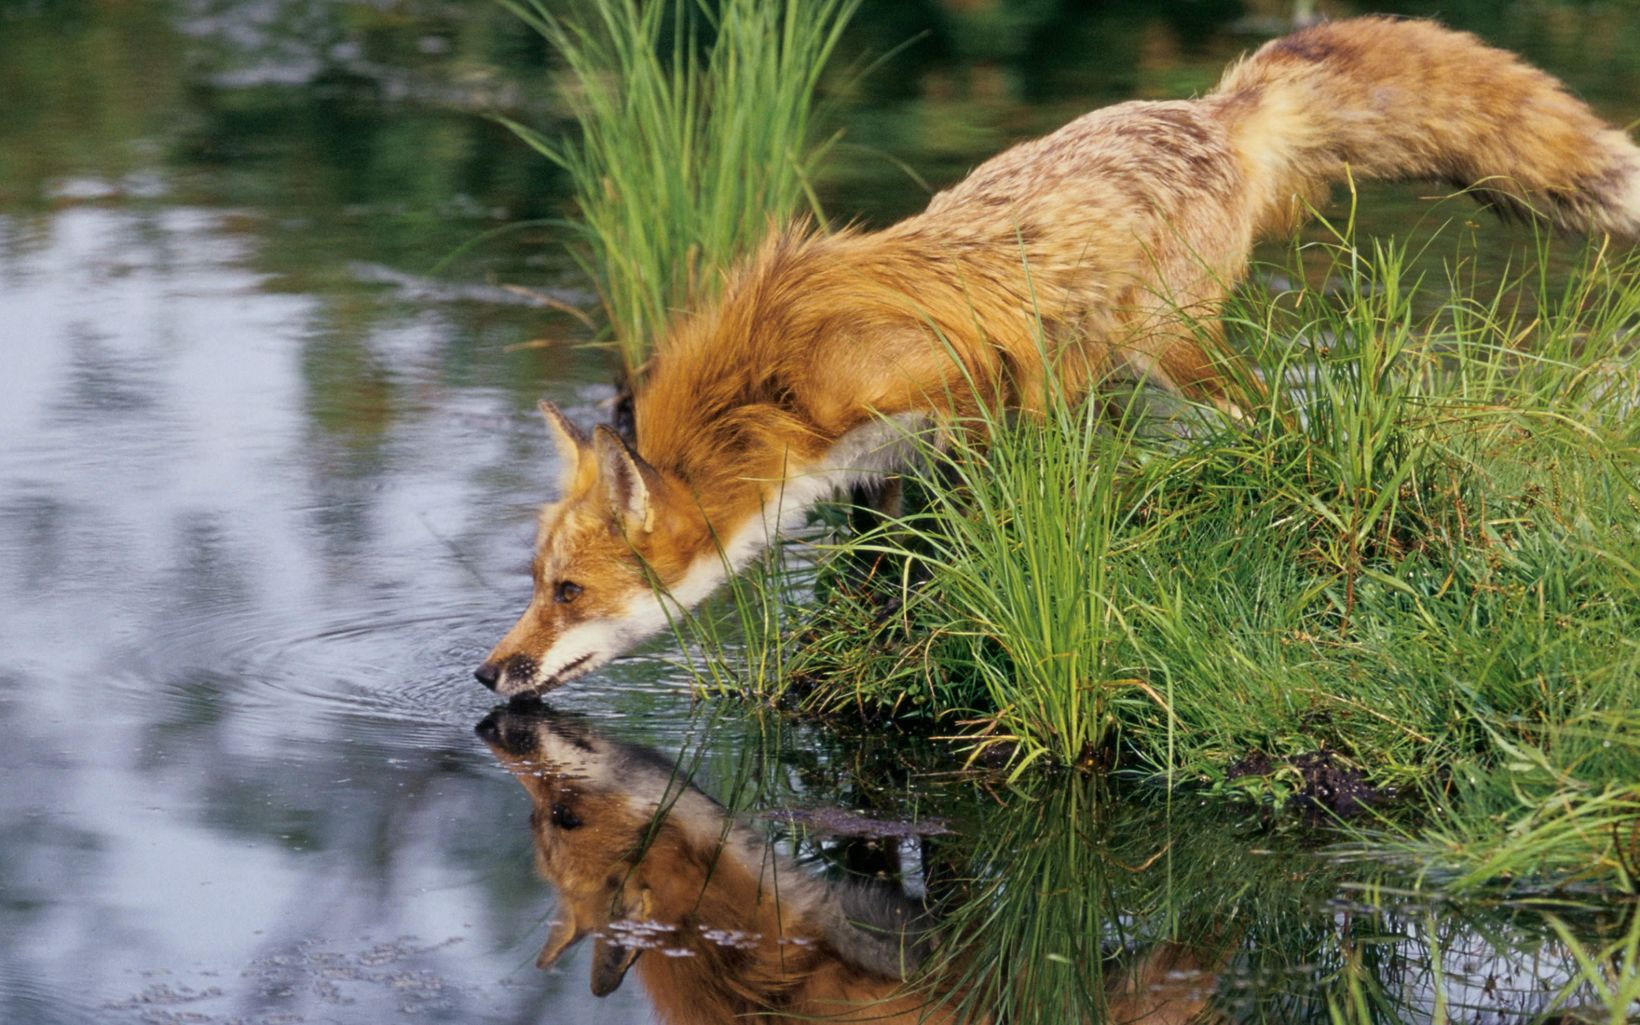 Red foxes can be found all over Wisconsin, especially in the southern, central and western parts of the state.